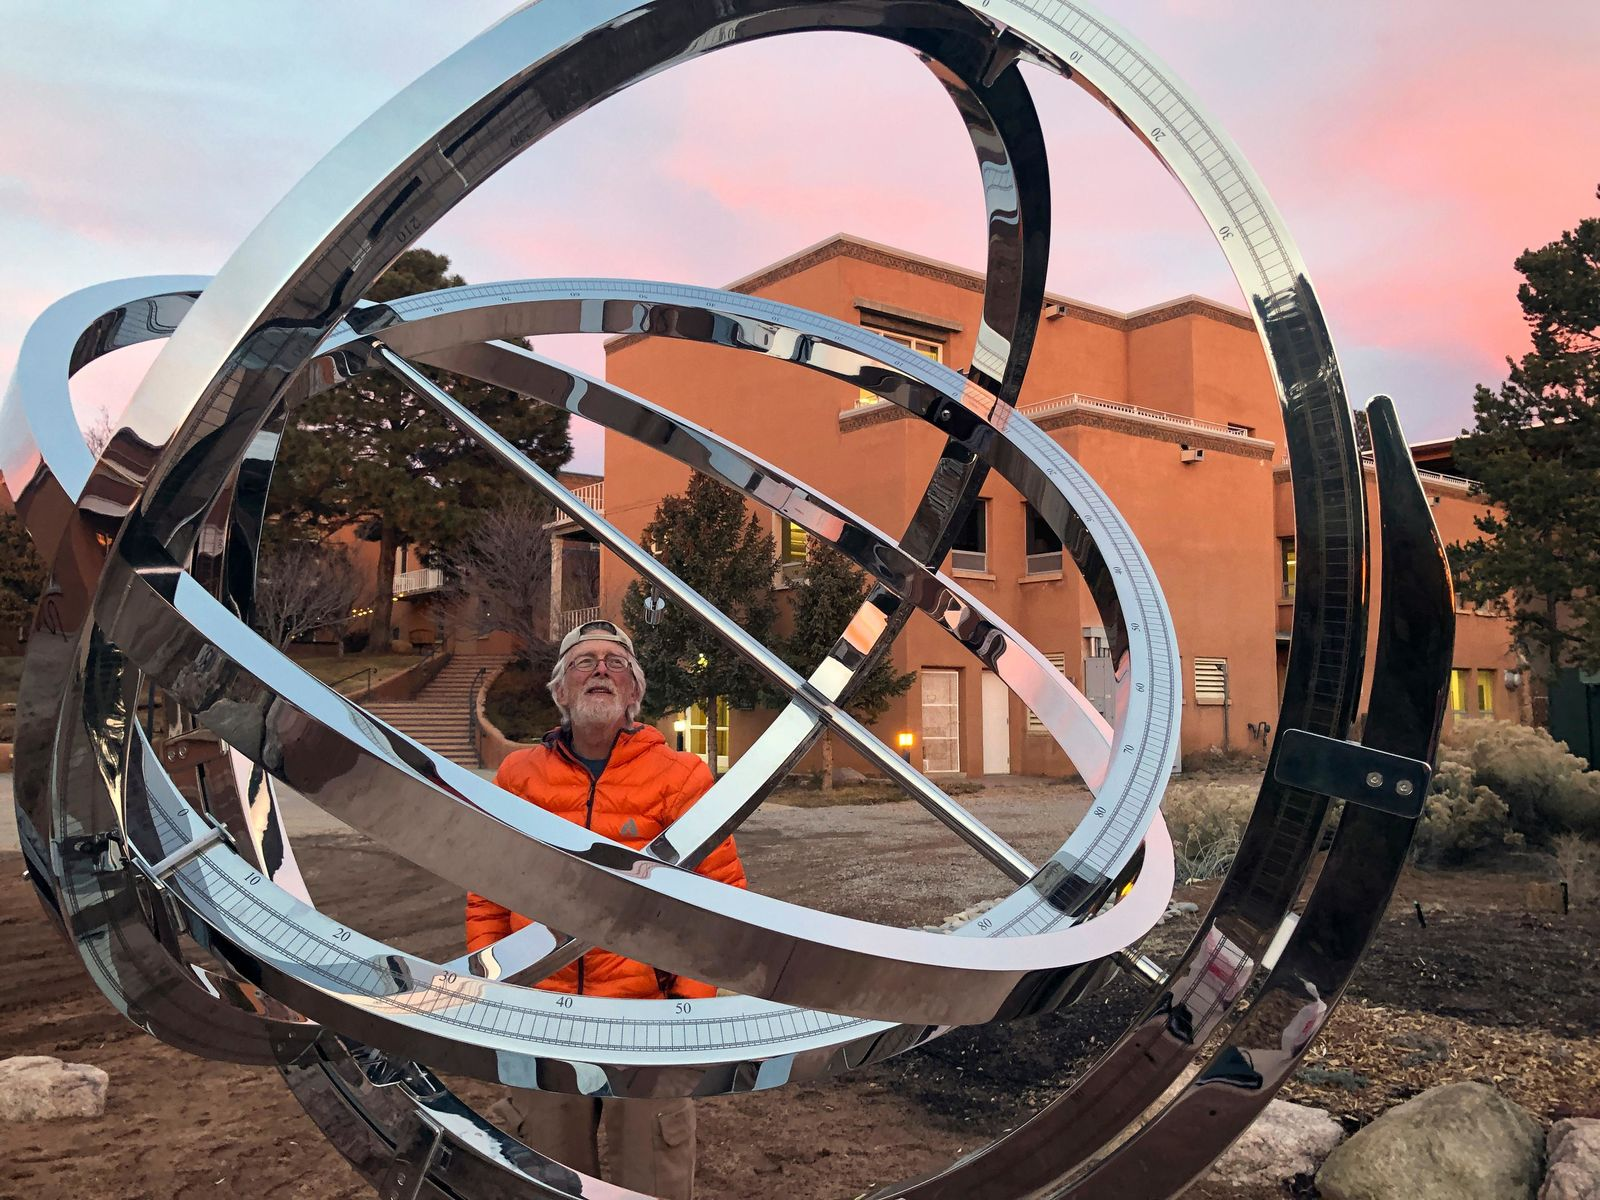 In this Dec. 11, 2019 photo Bill Donahue, a retired teacher and director of laboratories at St. John's College, uses an armillary sphere to track planetary rotations and explore the history of astronomy in Santa Fe, N.M. The unique precision-steel replica of an instrument created by Danish astonomer Tycho Brahe was commissioned by graduates of the college where students trace the evolution of math and science from early civilizations. (AP Photo/Morgan Lee)